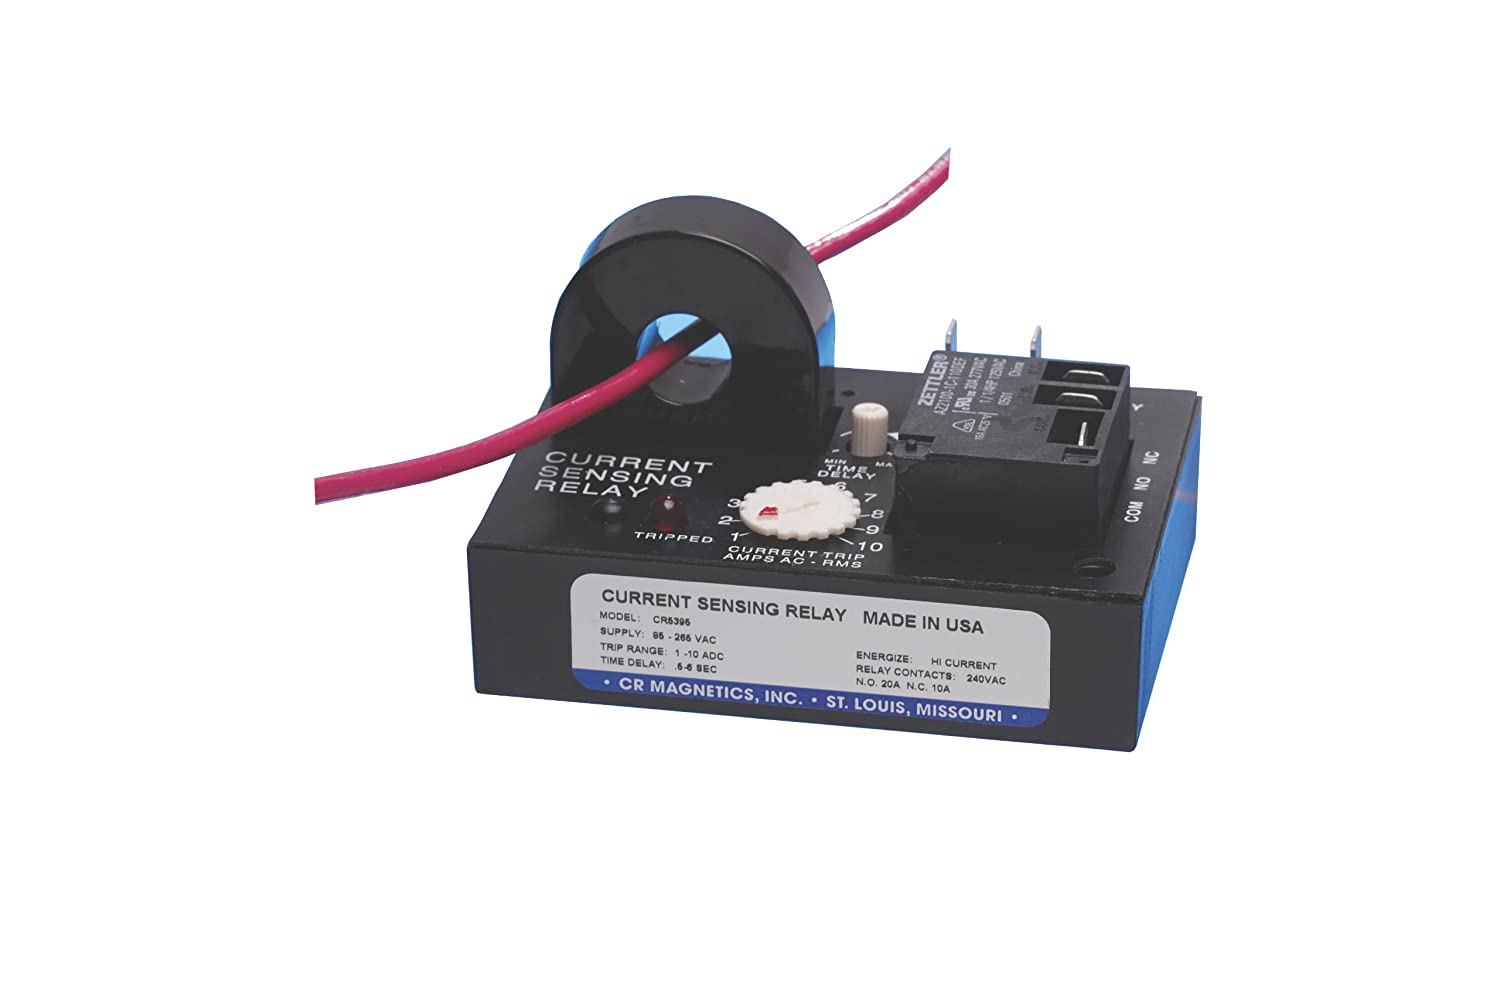 Zero Crossing and Internal Transformer 0.1-1 Second Trip on Delay 3-30 AAC Trip Range Latch on Low Trip 24D VAC CR Magnetics CR4395-LL-24D-330-C-CD-TRC-I Current Sensing Relay with Optoisolated Triac